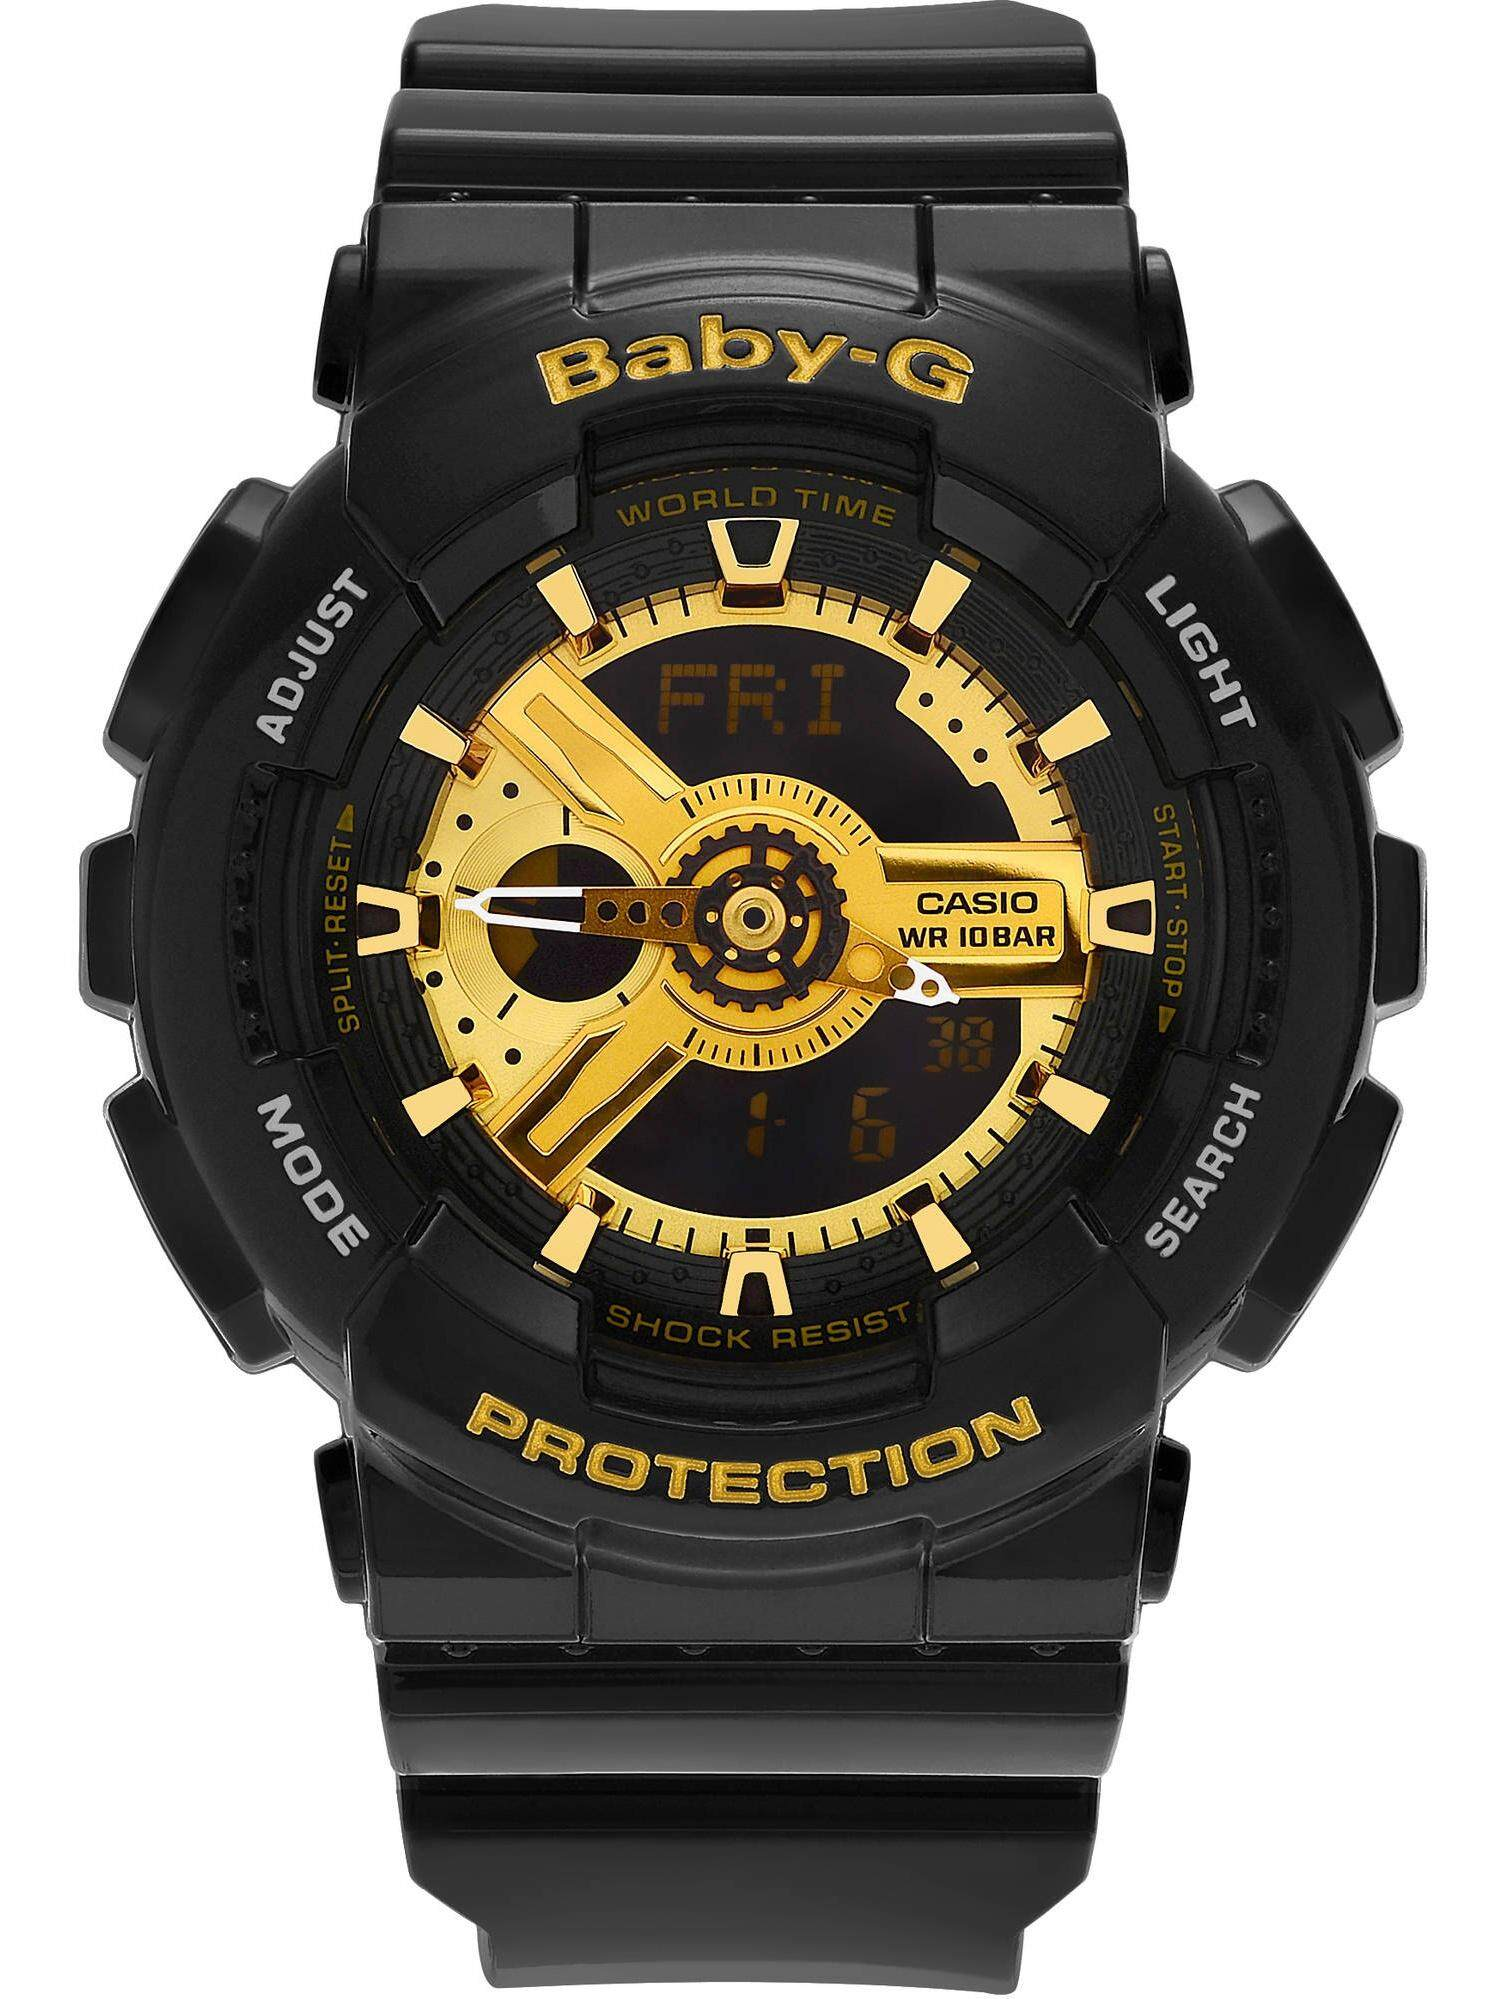 SPECIAL PROMOTION CASI0 BABY....G_BG110 DUAL TIME RUBBER STRAP WATCH FOR WOMEN Malaysia